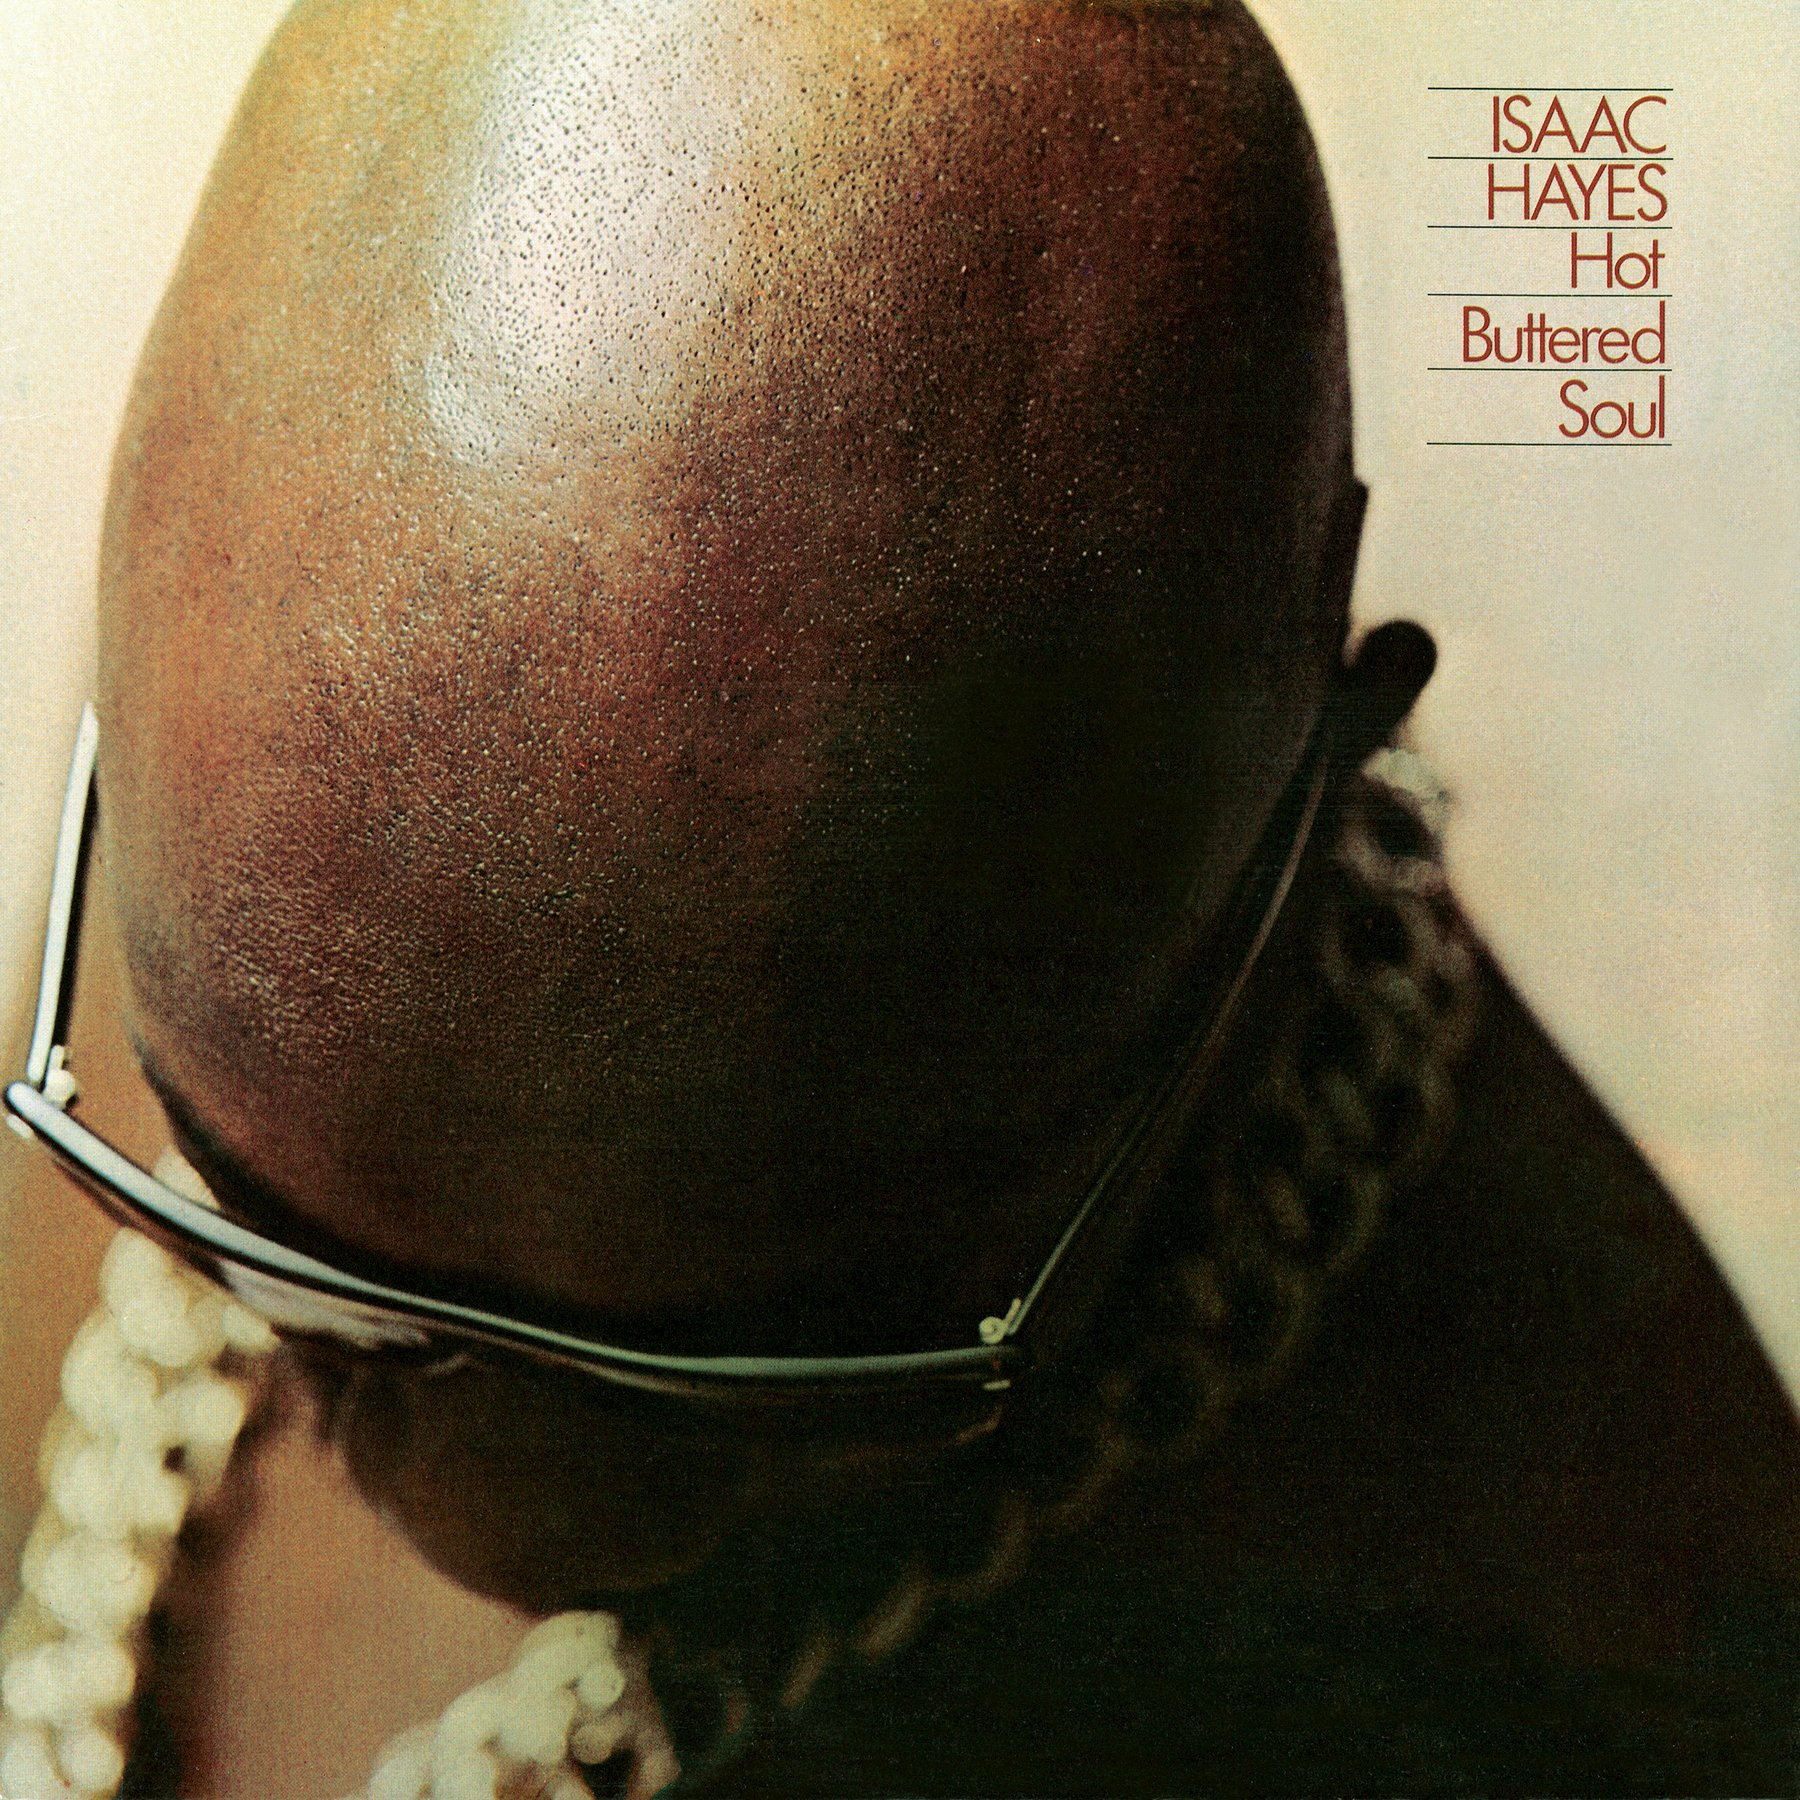 Issac Hayes – Hot Buttered Soul – AOTM July 2021